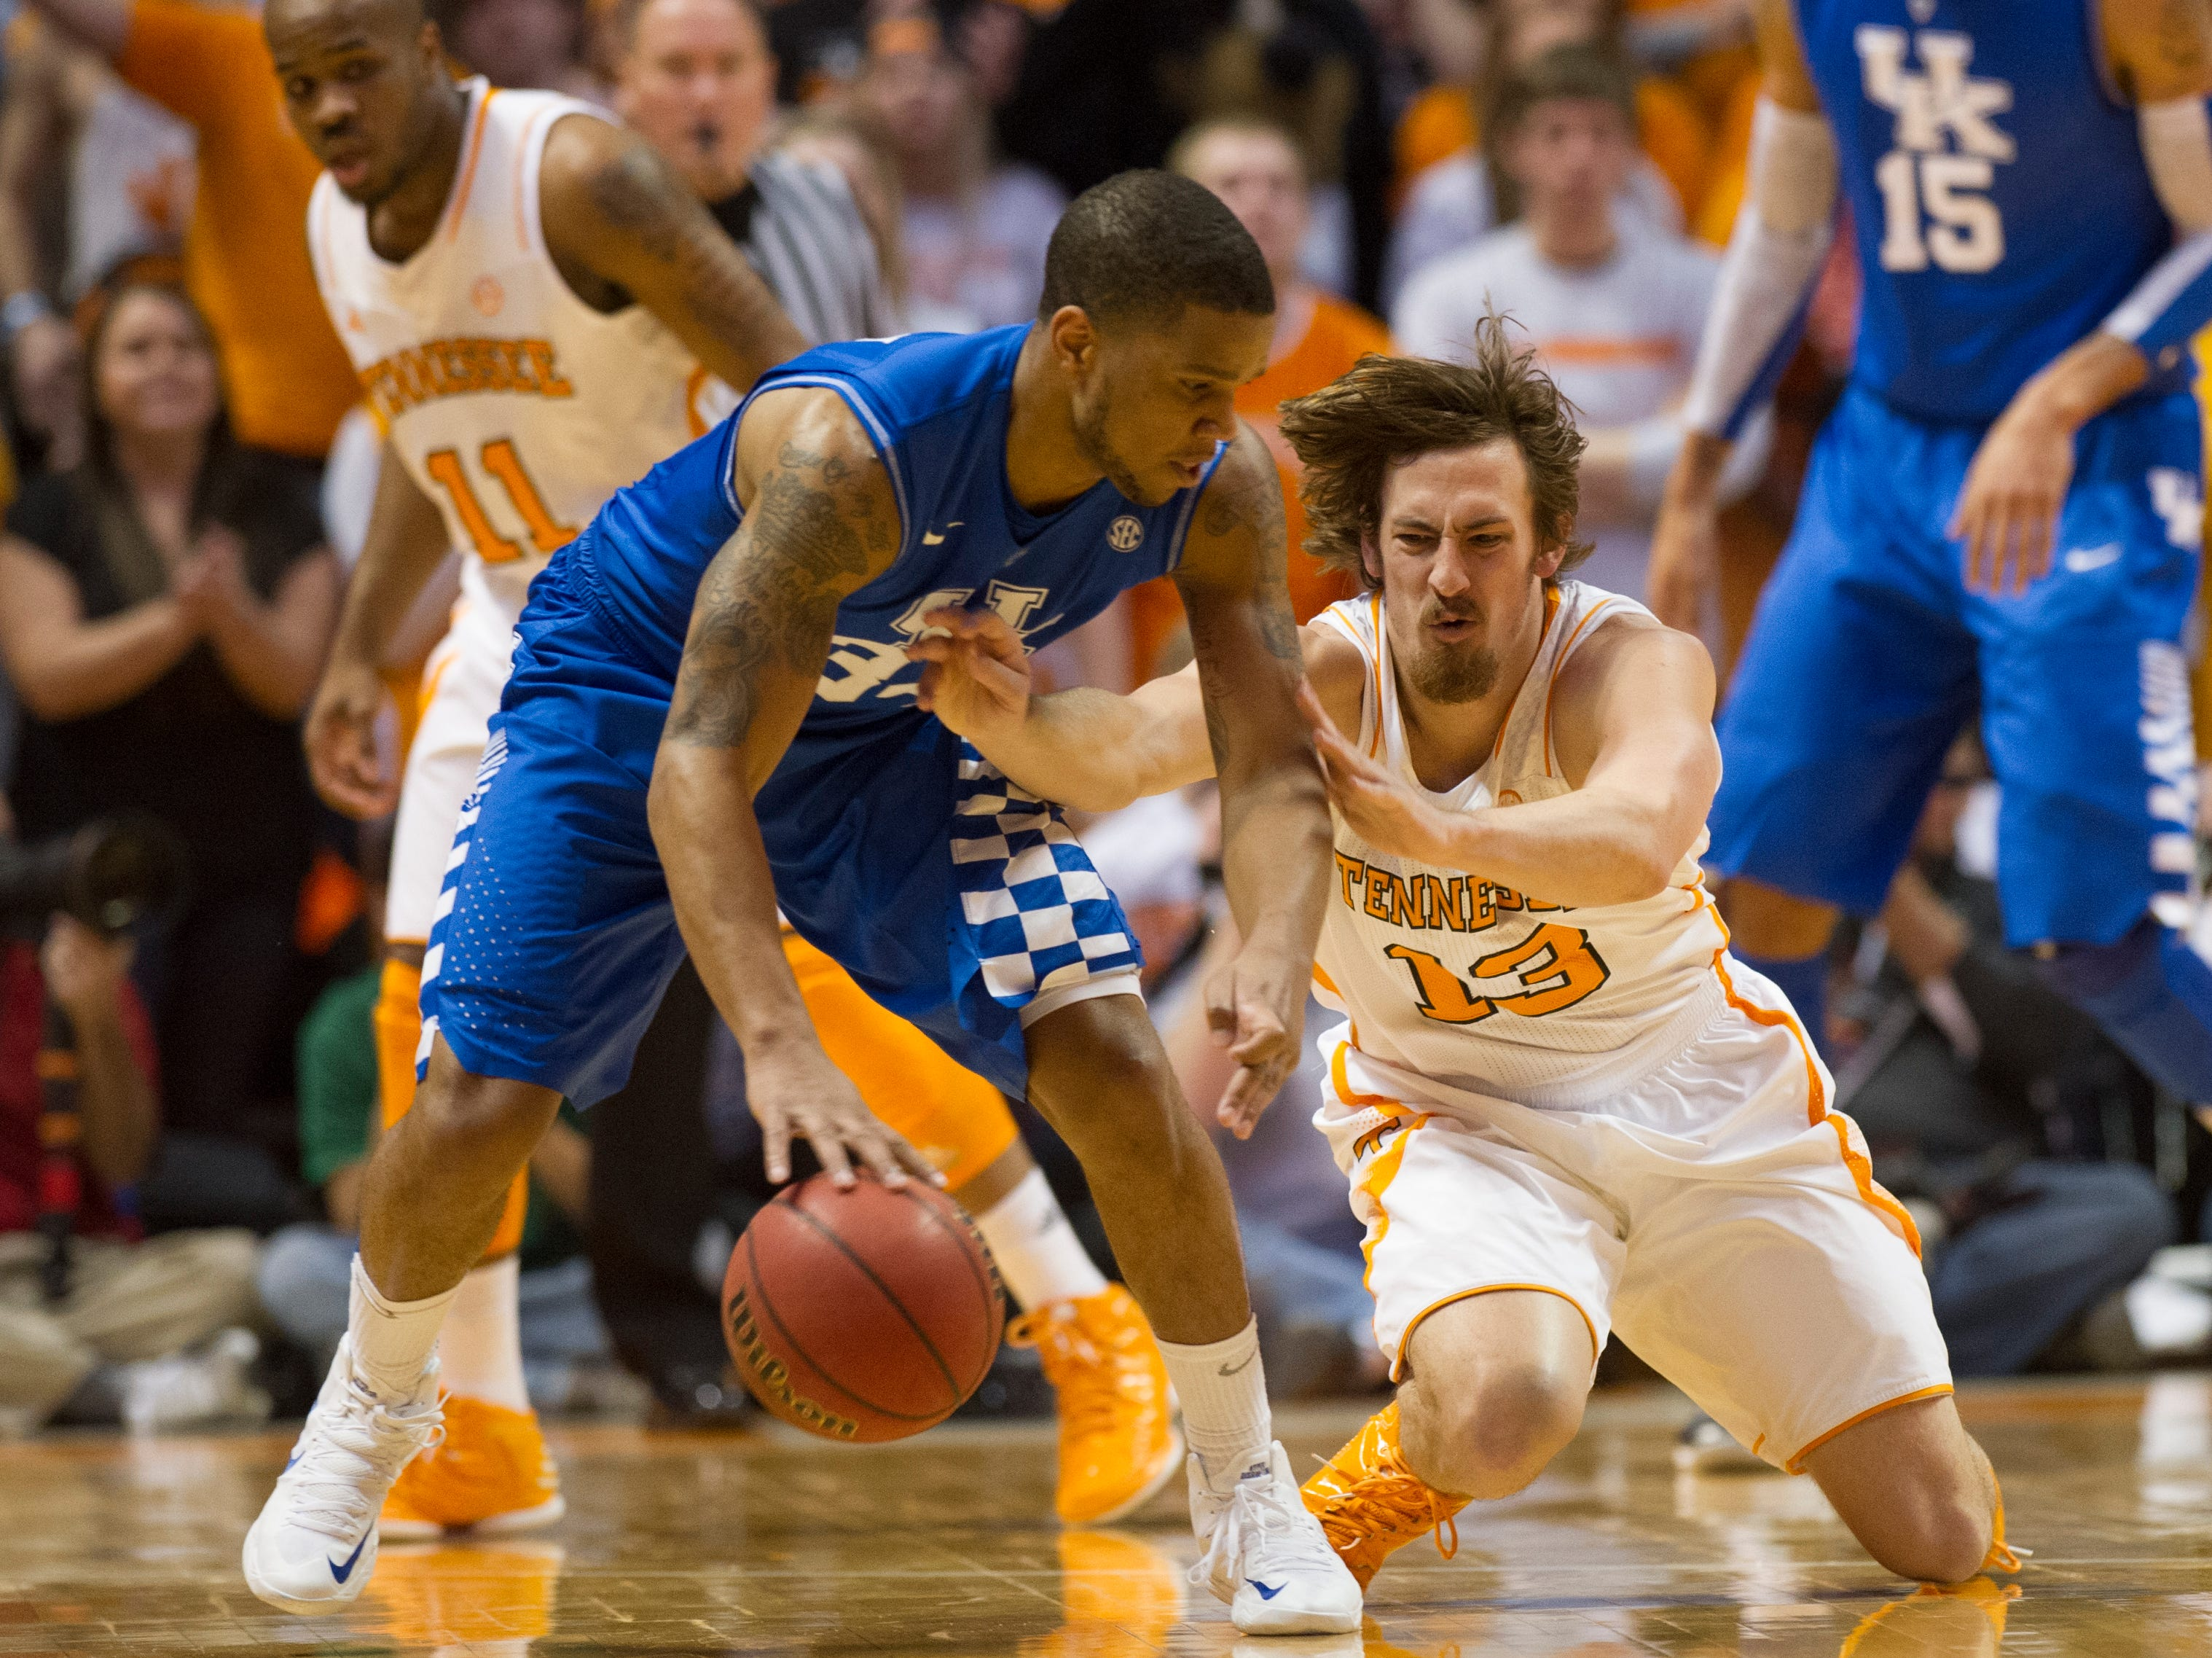 Kentucky guard Julius Mays (34) handles the ball as Tennessee guard Skylar McBee (13) takes a dive during the first half at Thompson-Boling Arena Saturday, Feb. 16, 2013.